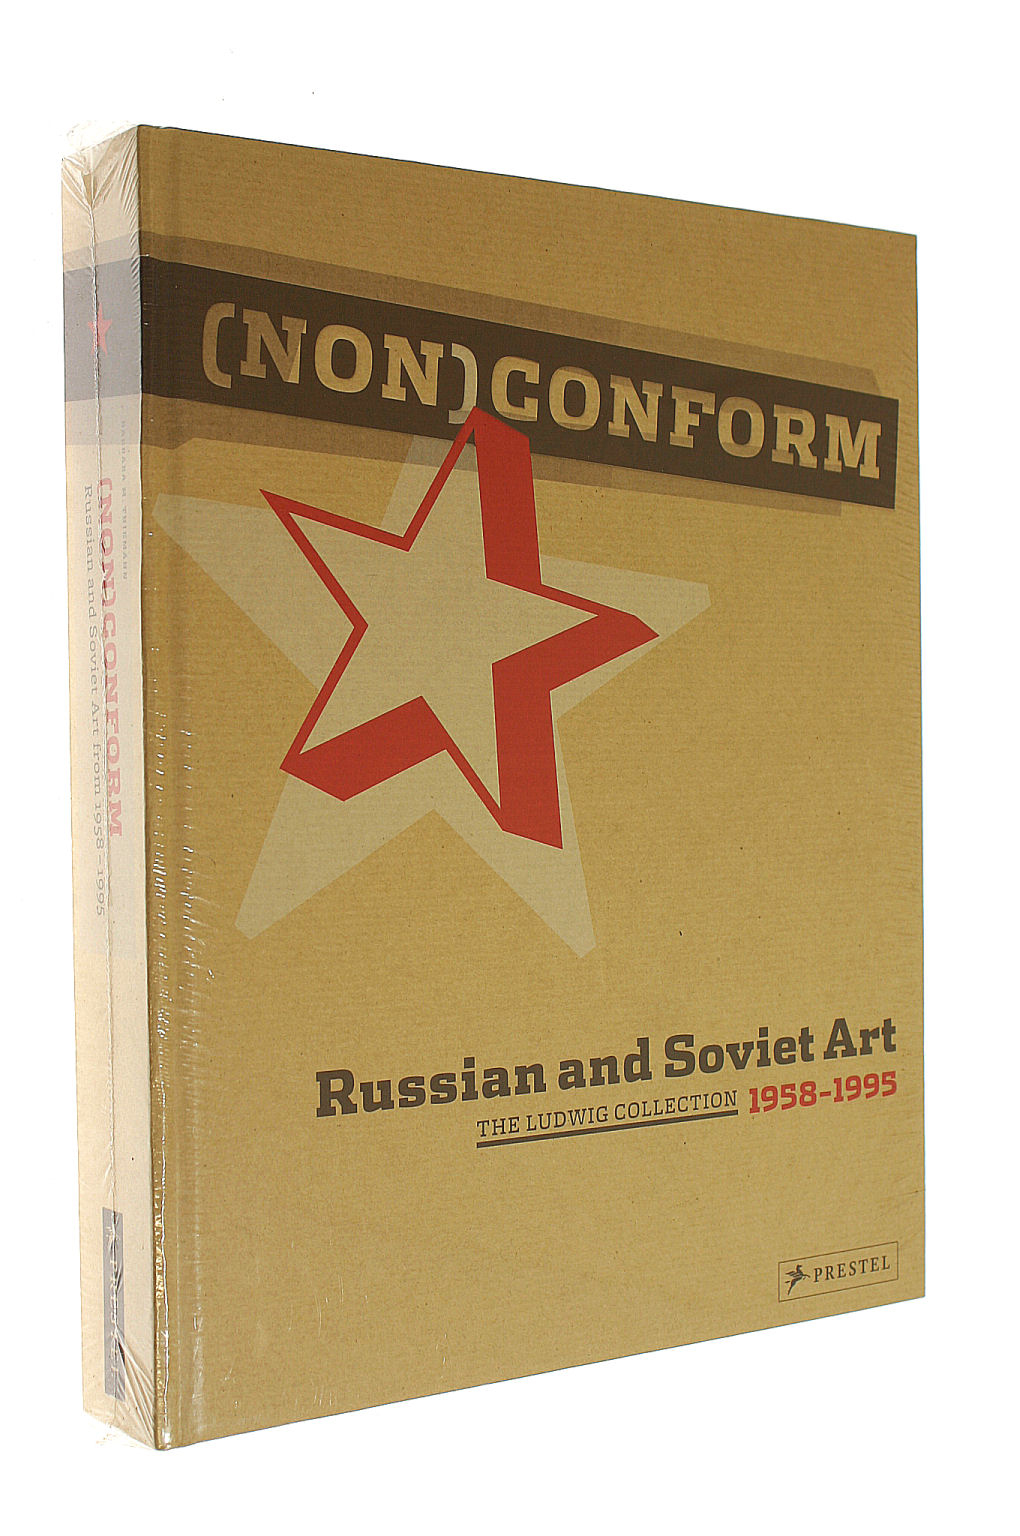 Image for (Non)conform: Russian and Soviet Artists 1958-1995: Ludwig Collection